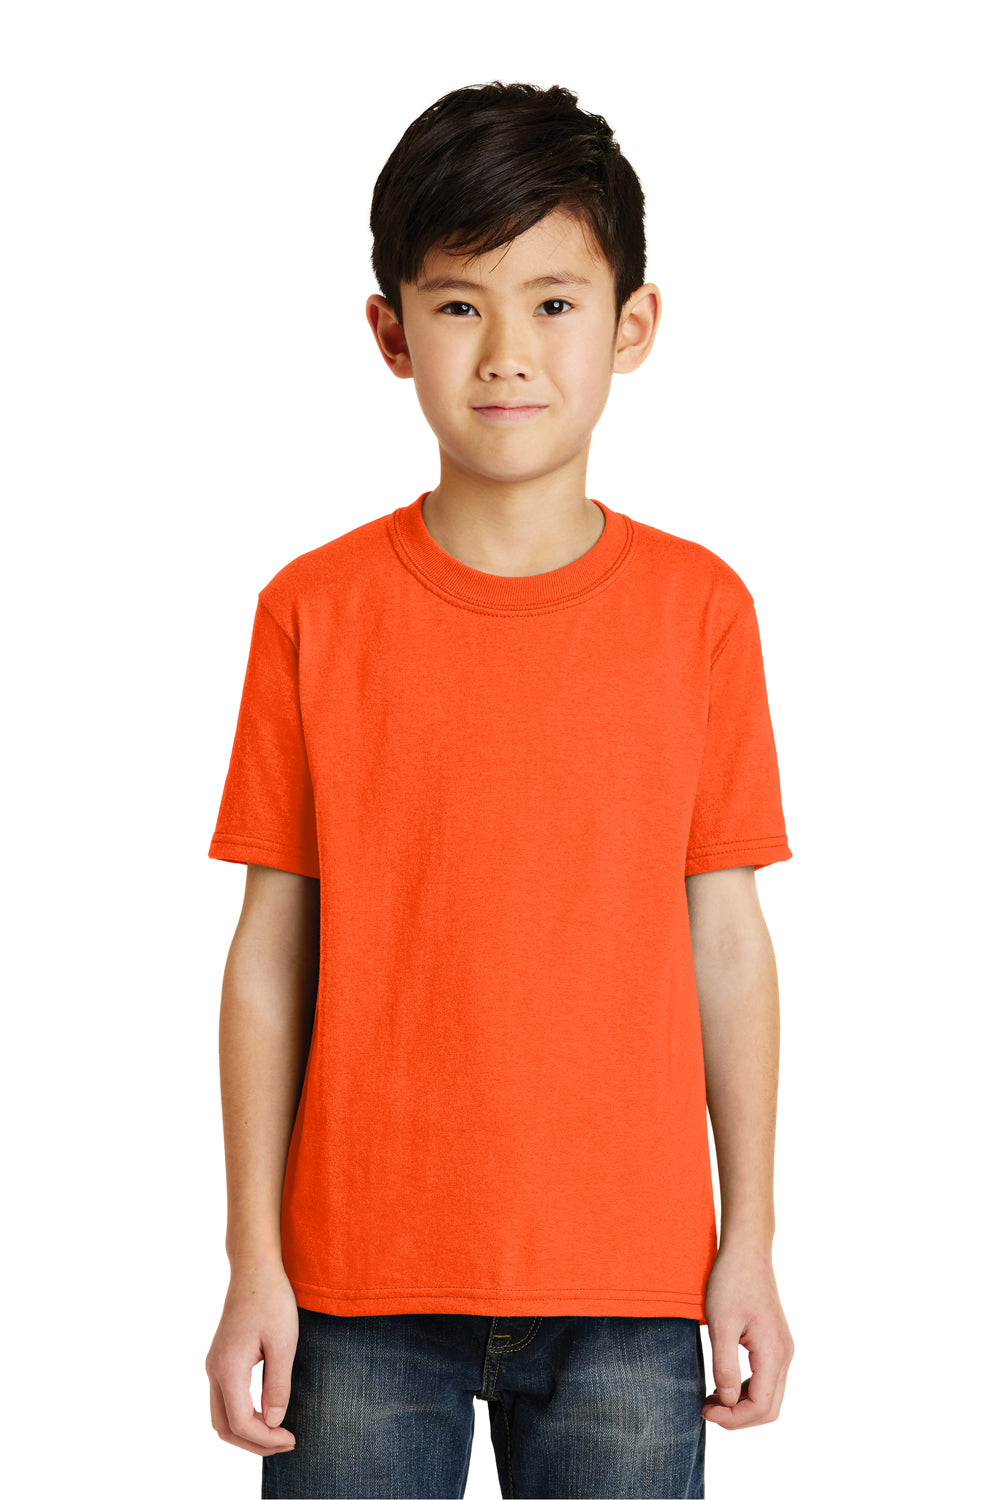 Port & Company PC55Y Youth Core Short Sleeve Crewneck T-Shirt Safety Orange Front